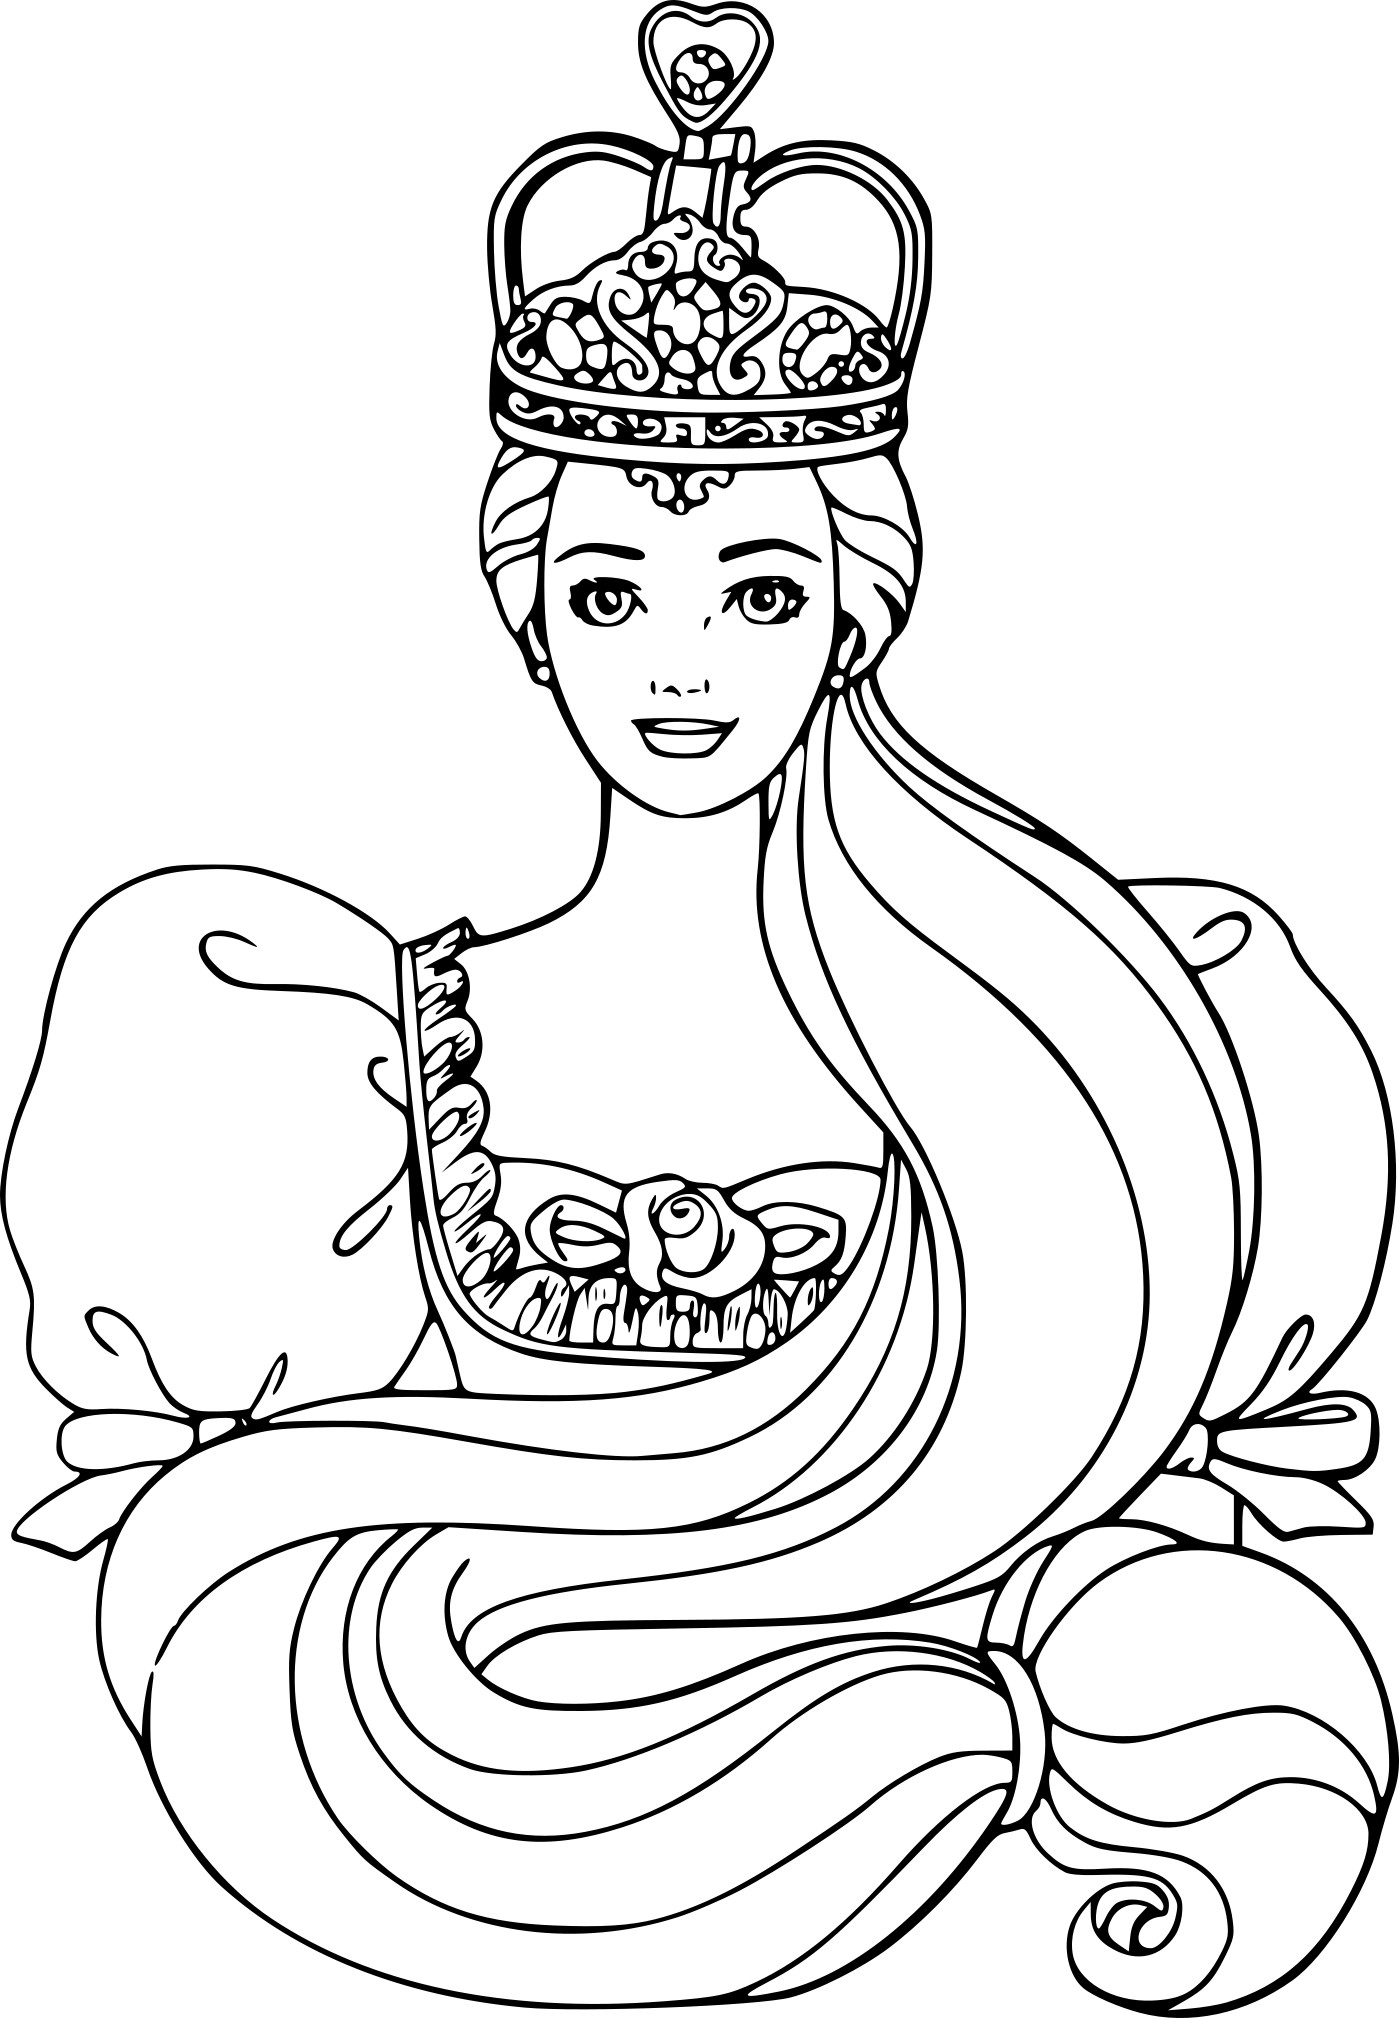 Coloriage barbie princesse disney imprimer gratuit - Dessin anime gratuit barbie ...